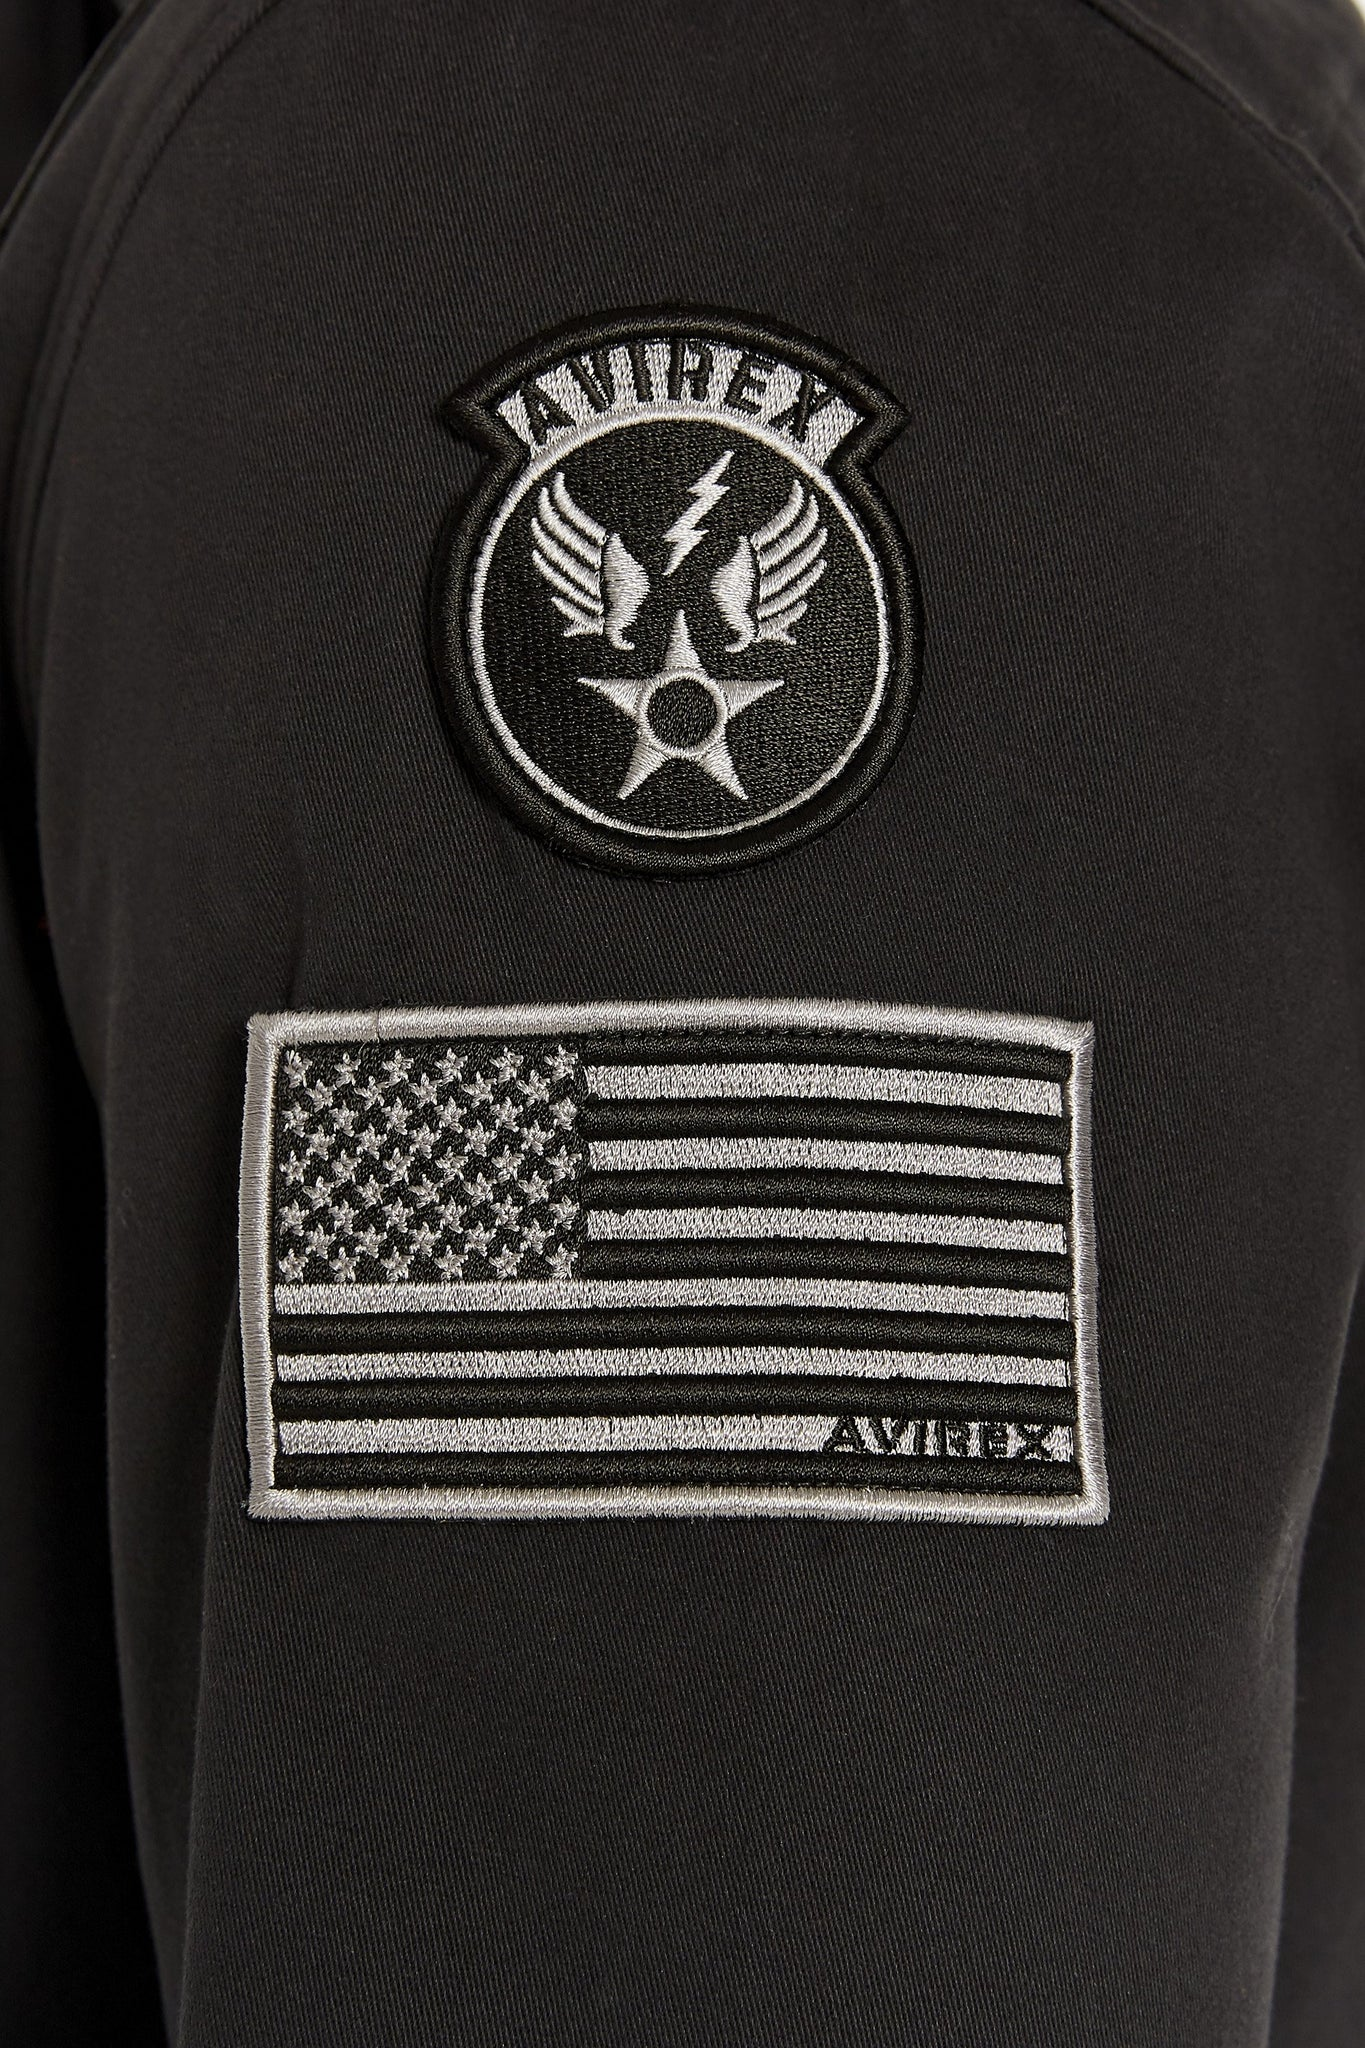 Detailed view of embroidery white logo and patch on the right arm